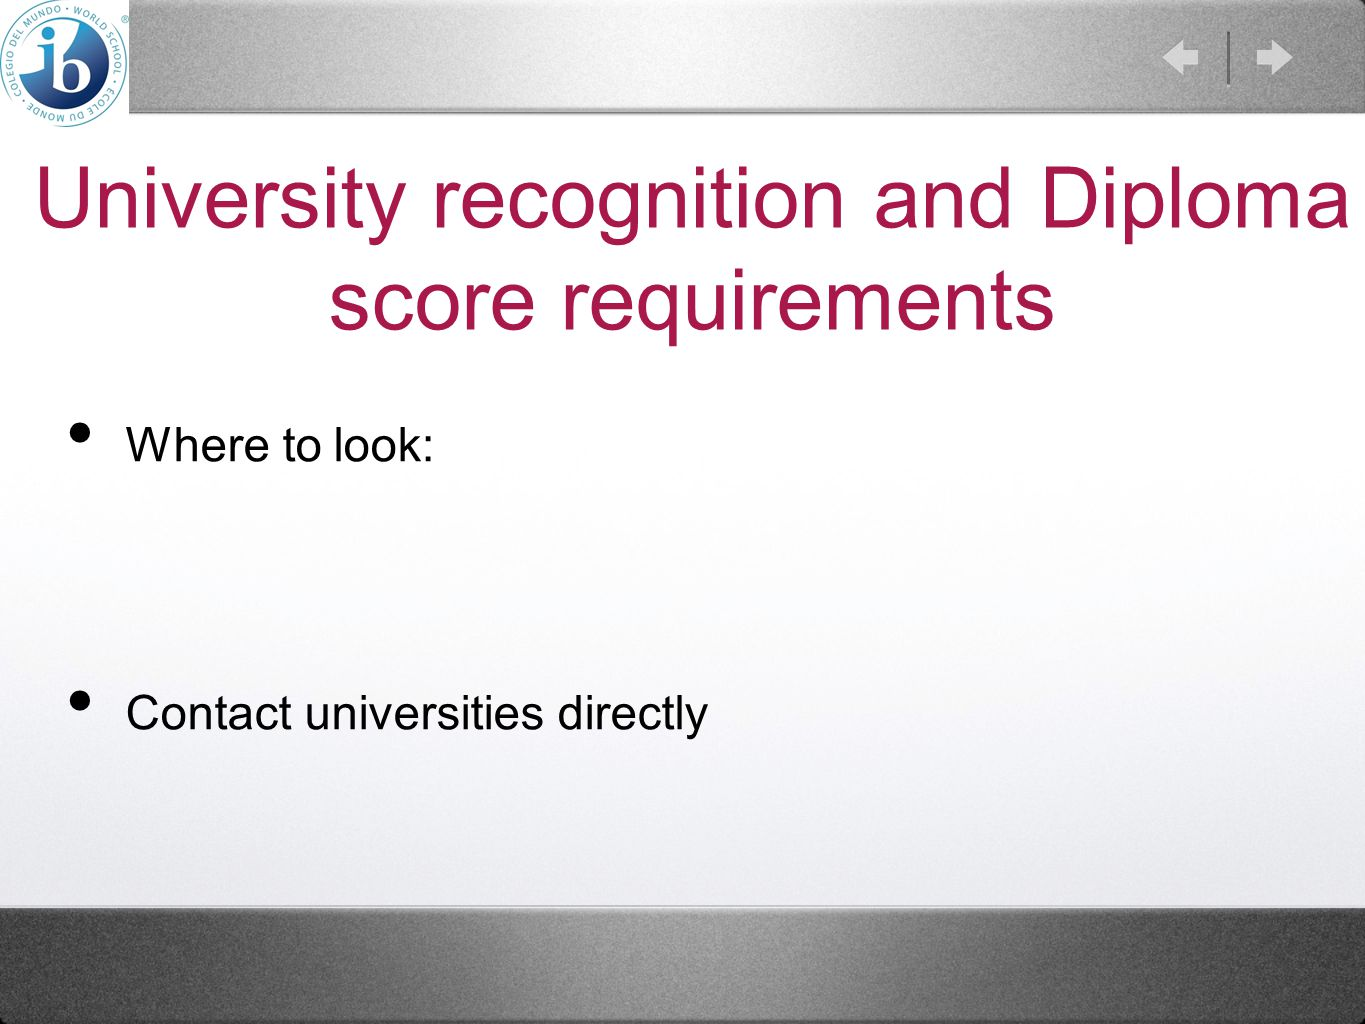 University recognition and Diploma score requirements